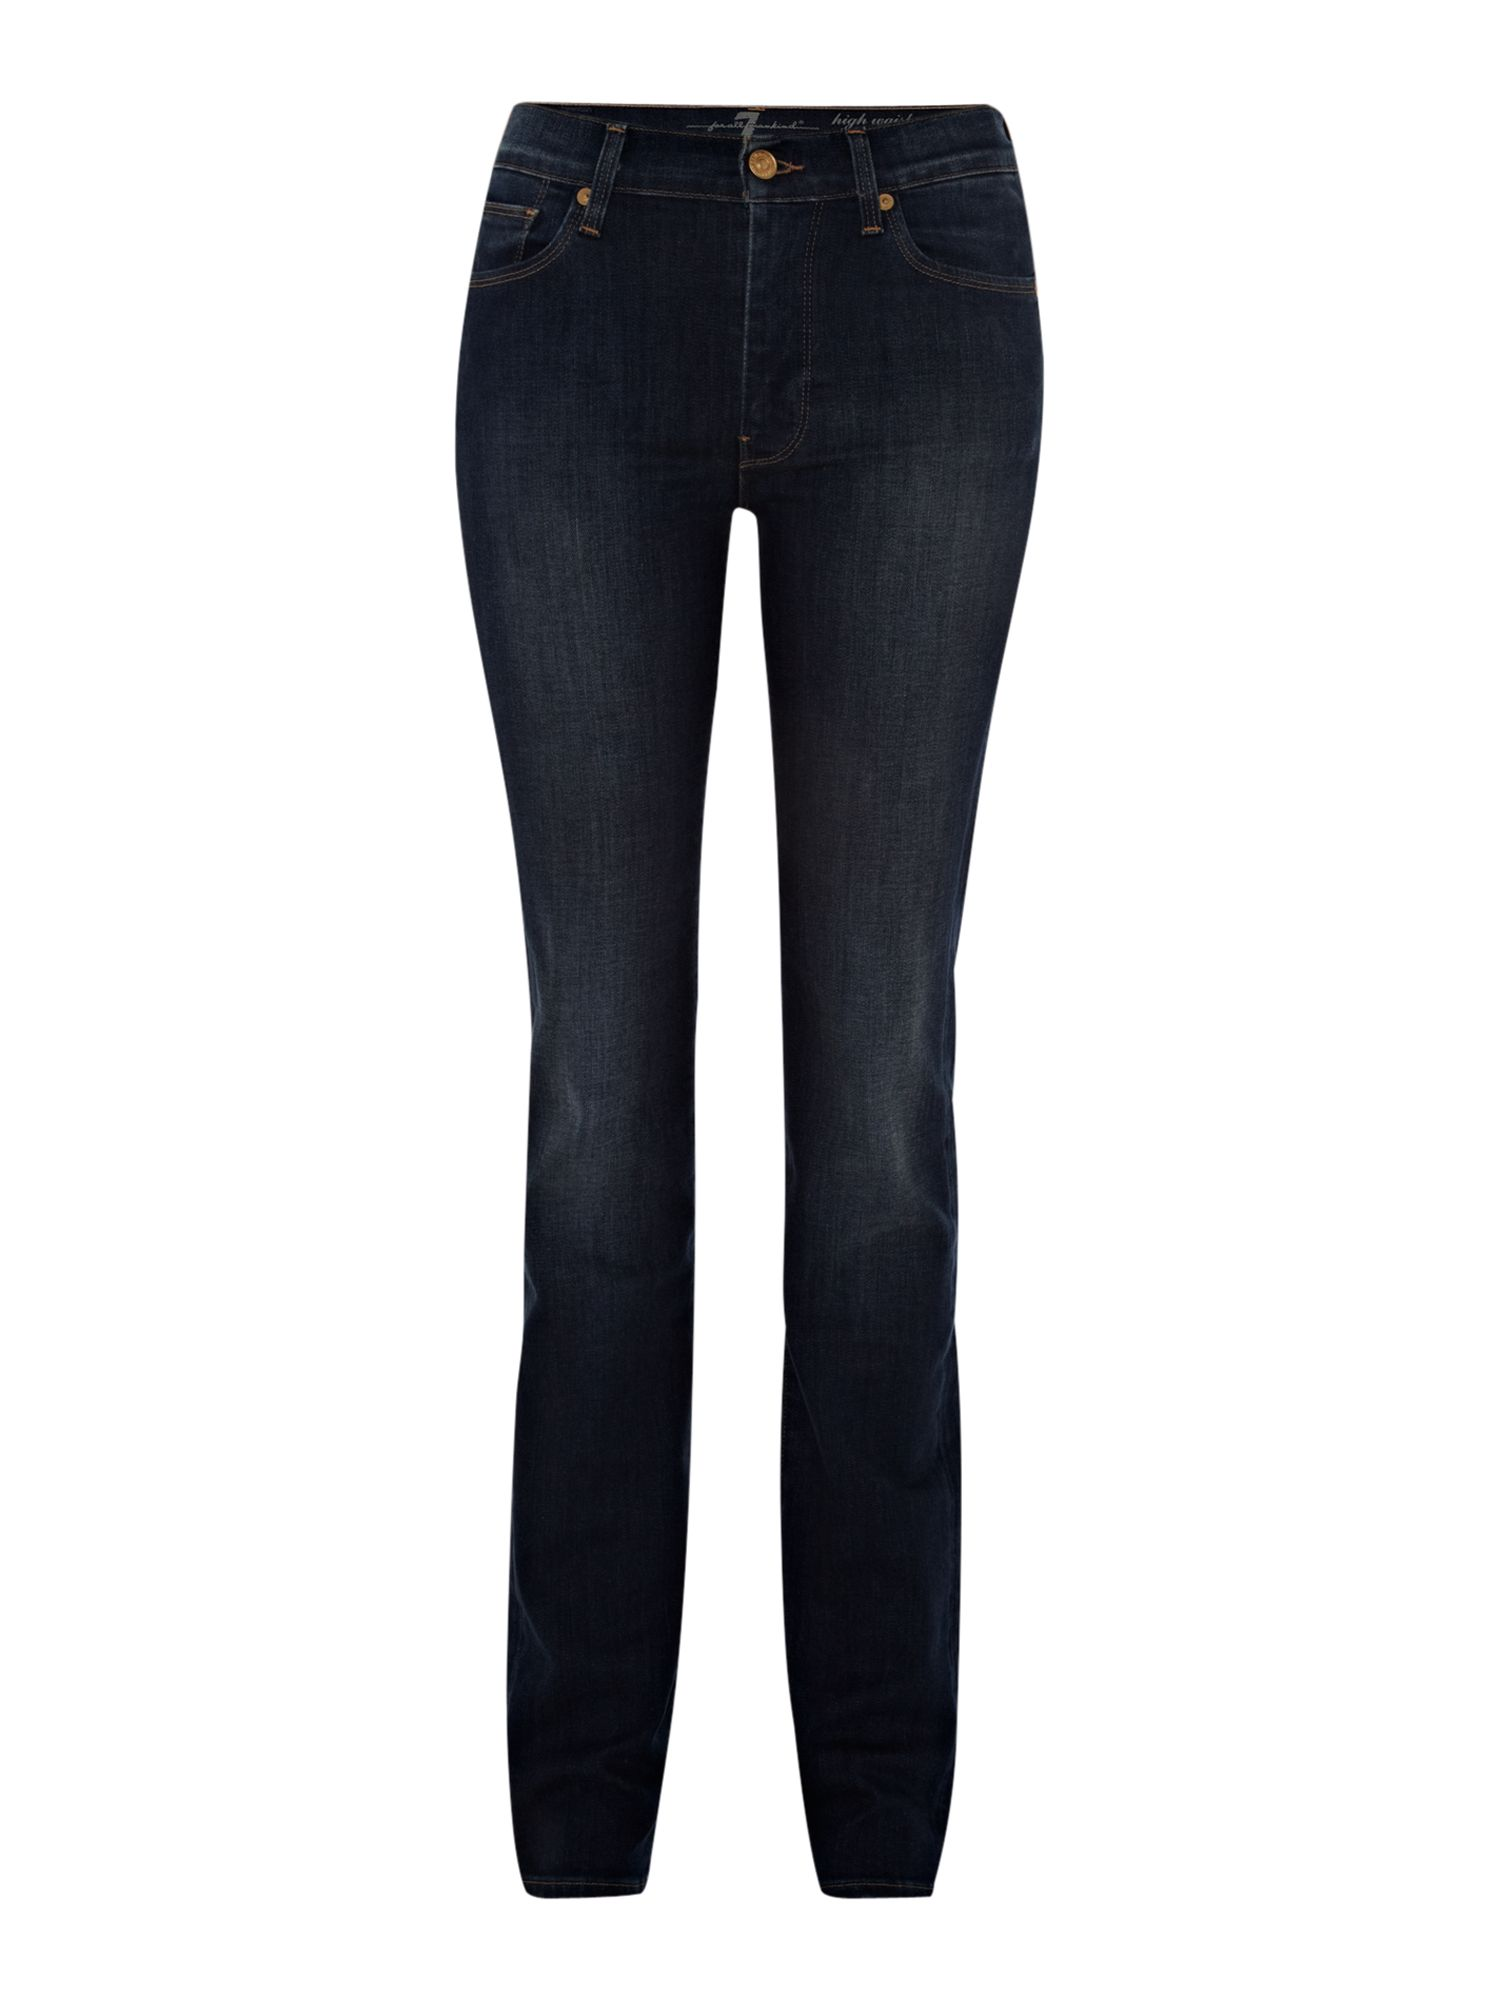 High waist straight leg jeans in Medium Indigo